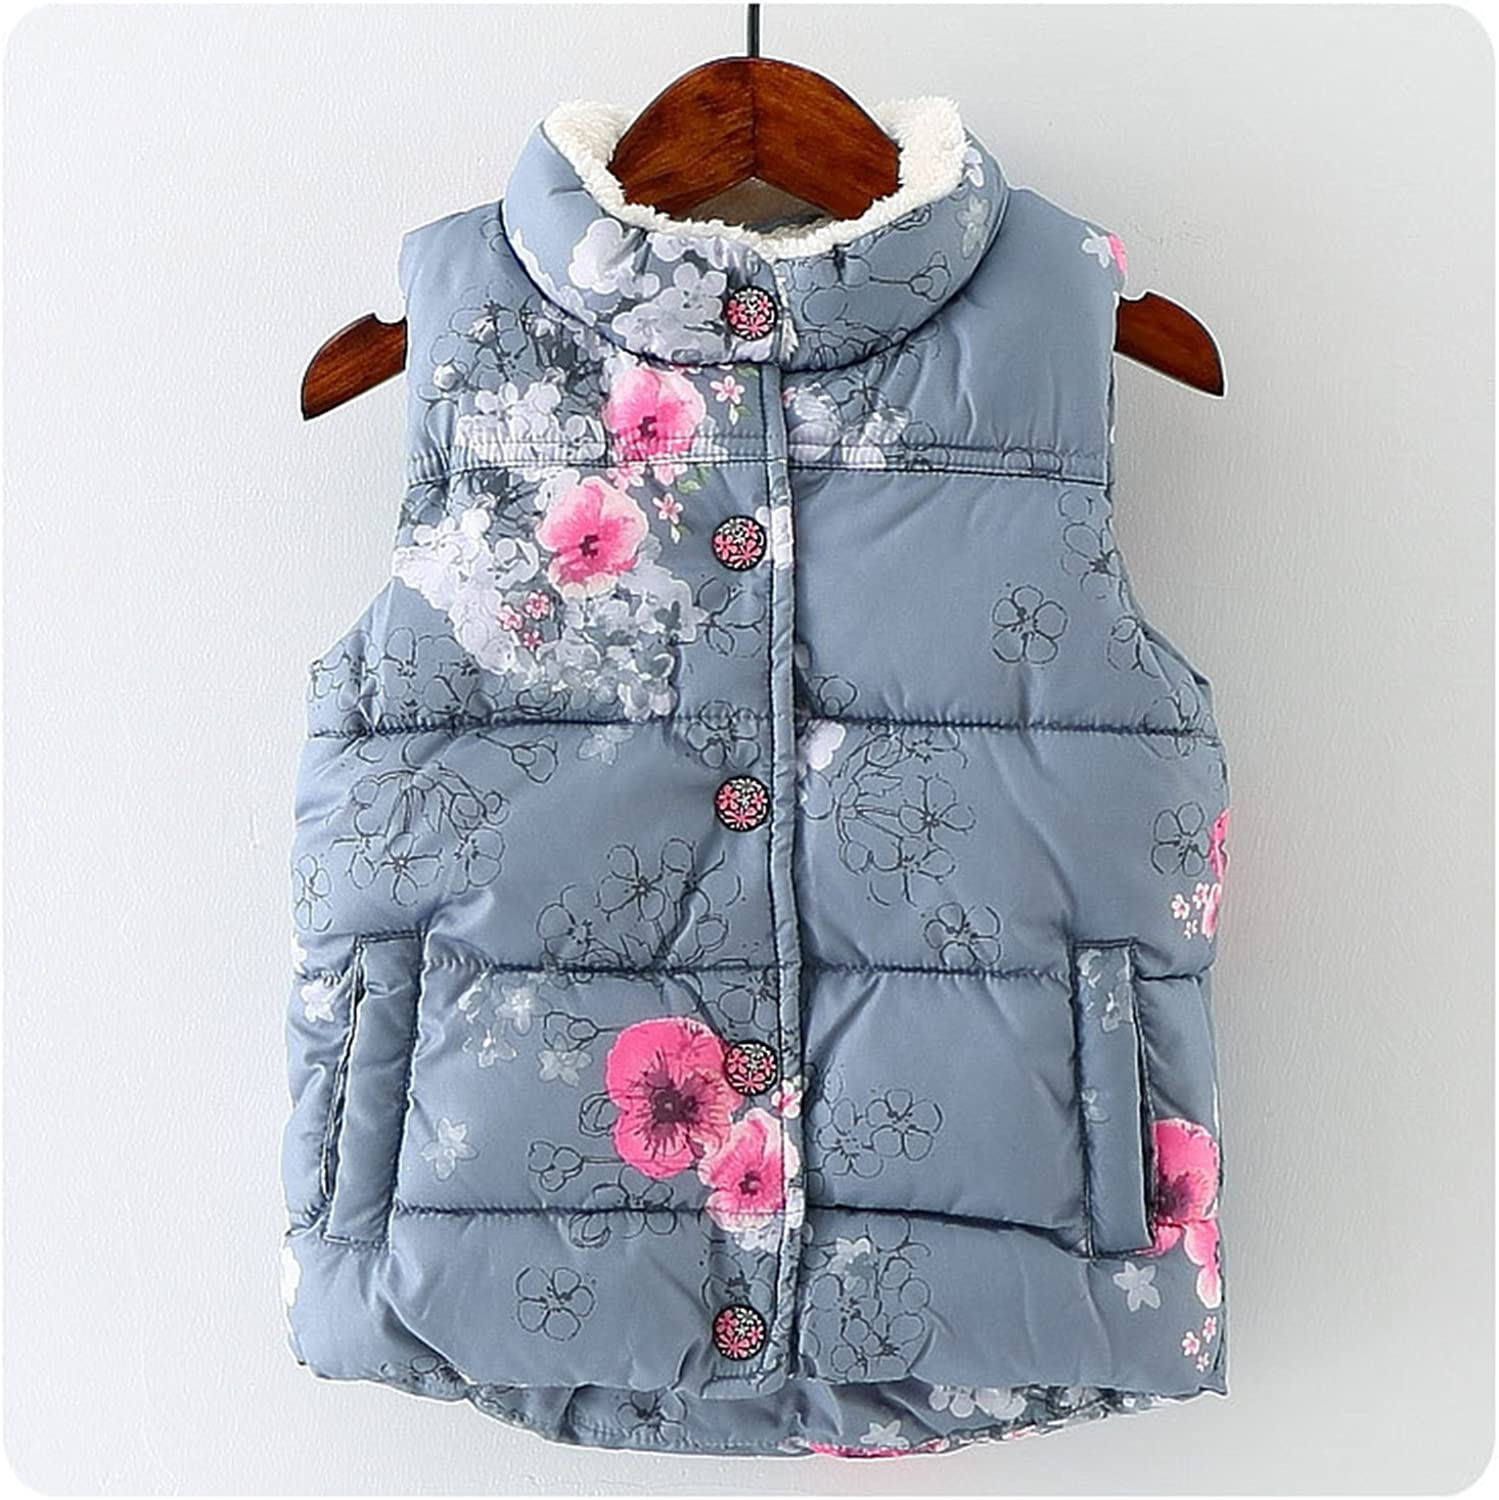 Mofgr Winter Baby Girls Waistcoat Thick With Fleece Kids Warm Vests Floral Print Toddler Childrens Vest